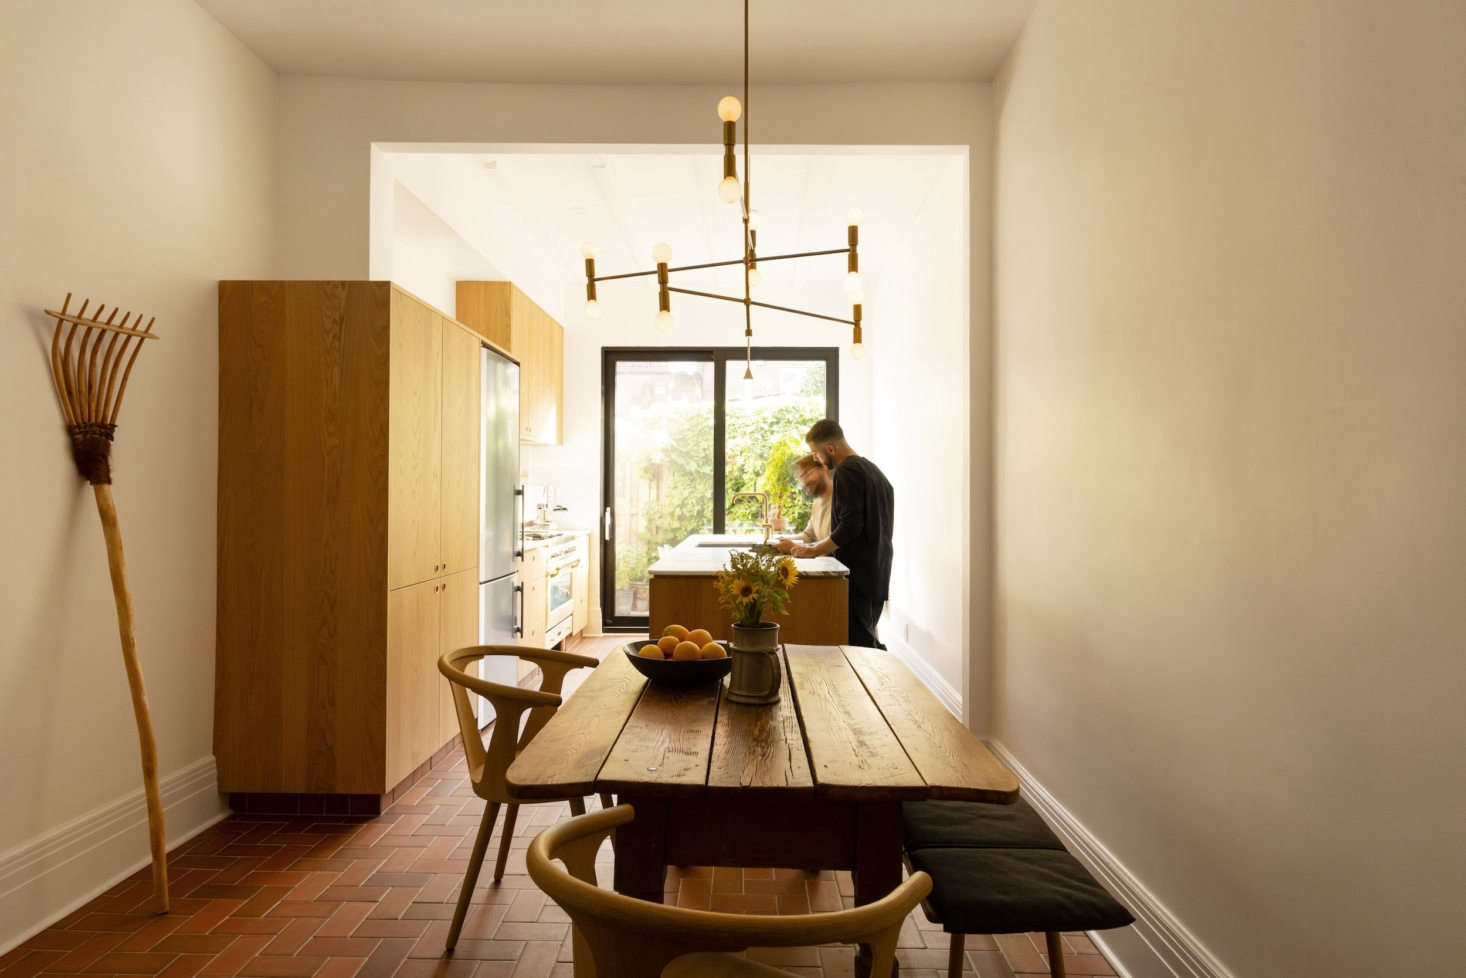 Architect Michael Godmer turned his compact townhome into a clever work-live space. Photograph by Maxime Brouillette, from An Architect's Narrow Townhouse in Montreal, Design Studio Included.